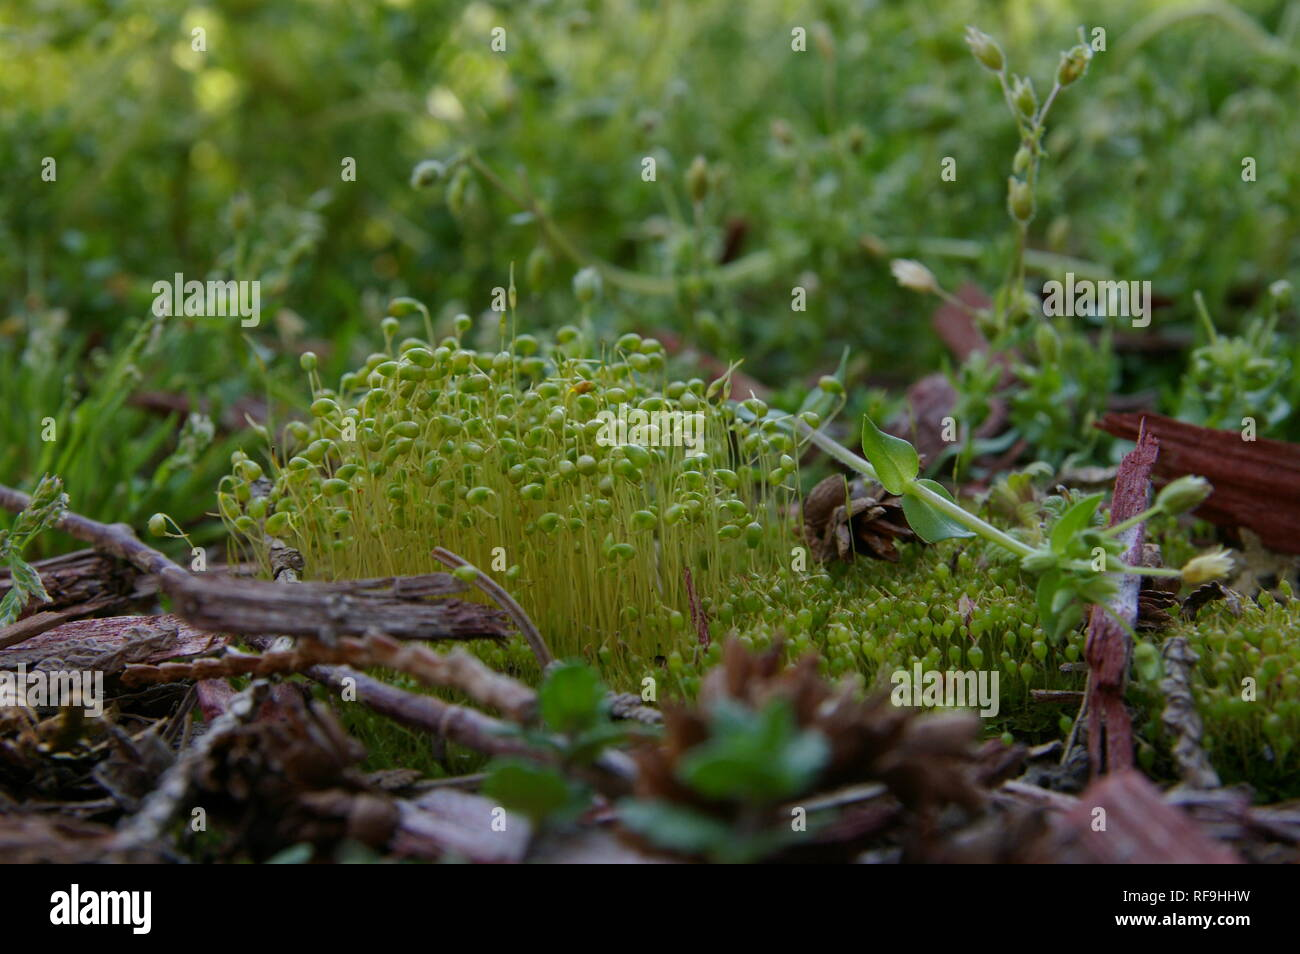 Moss with sporophytes in Indiana forest - Stock Image